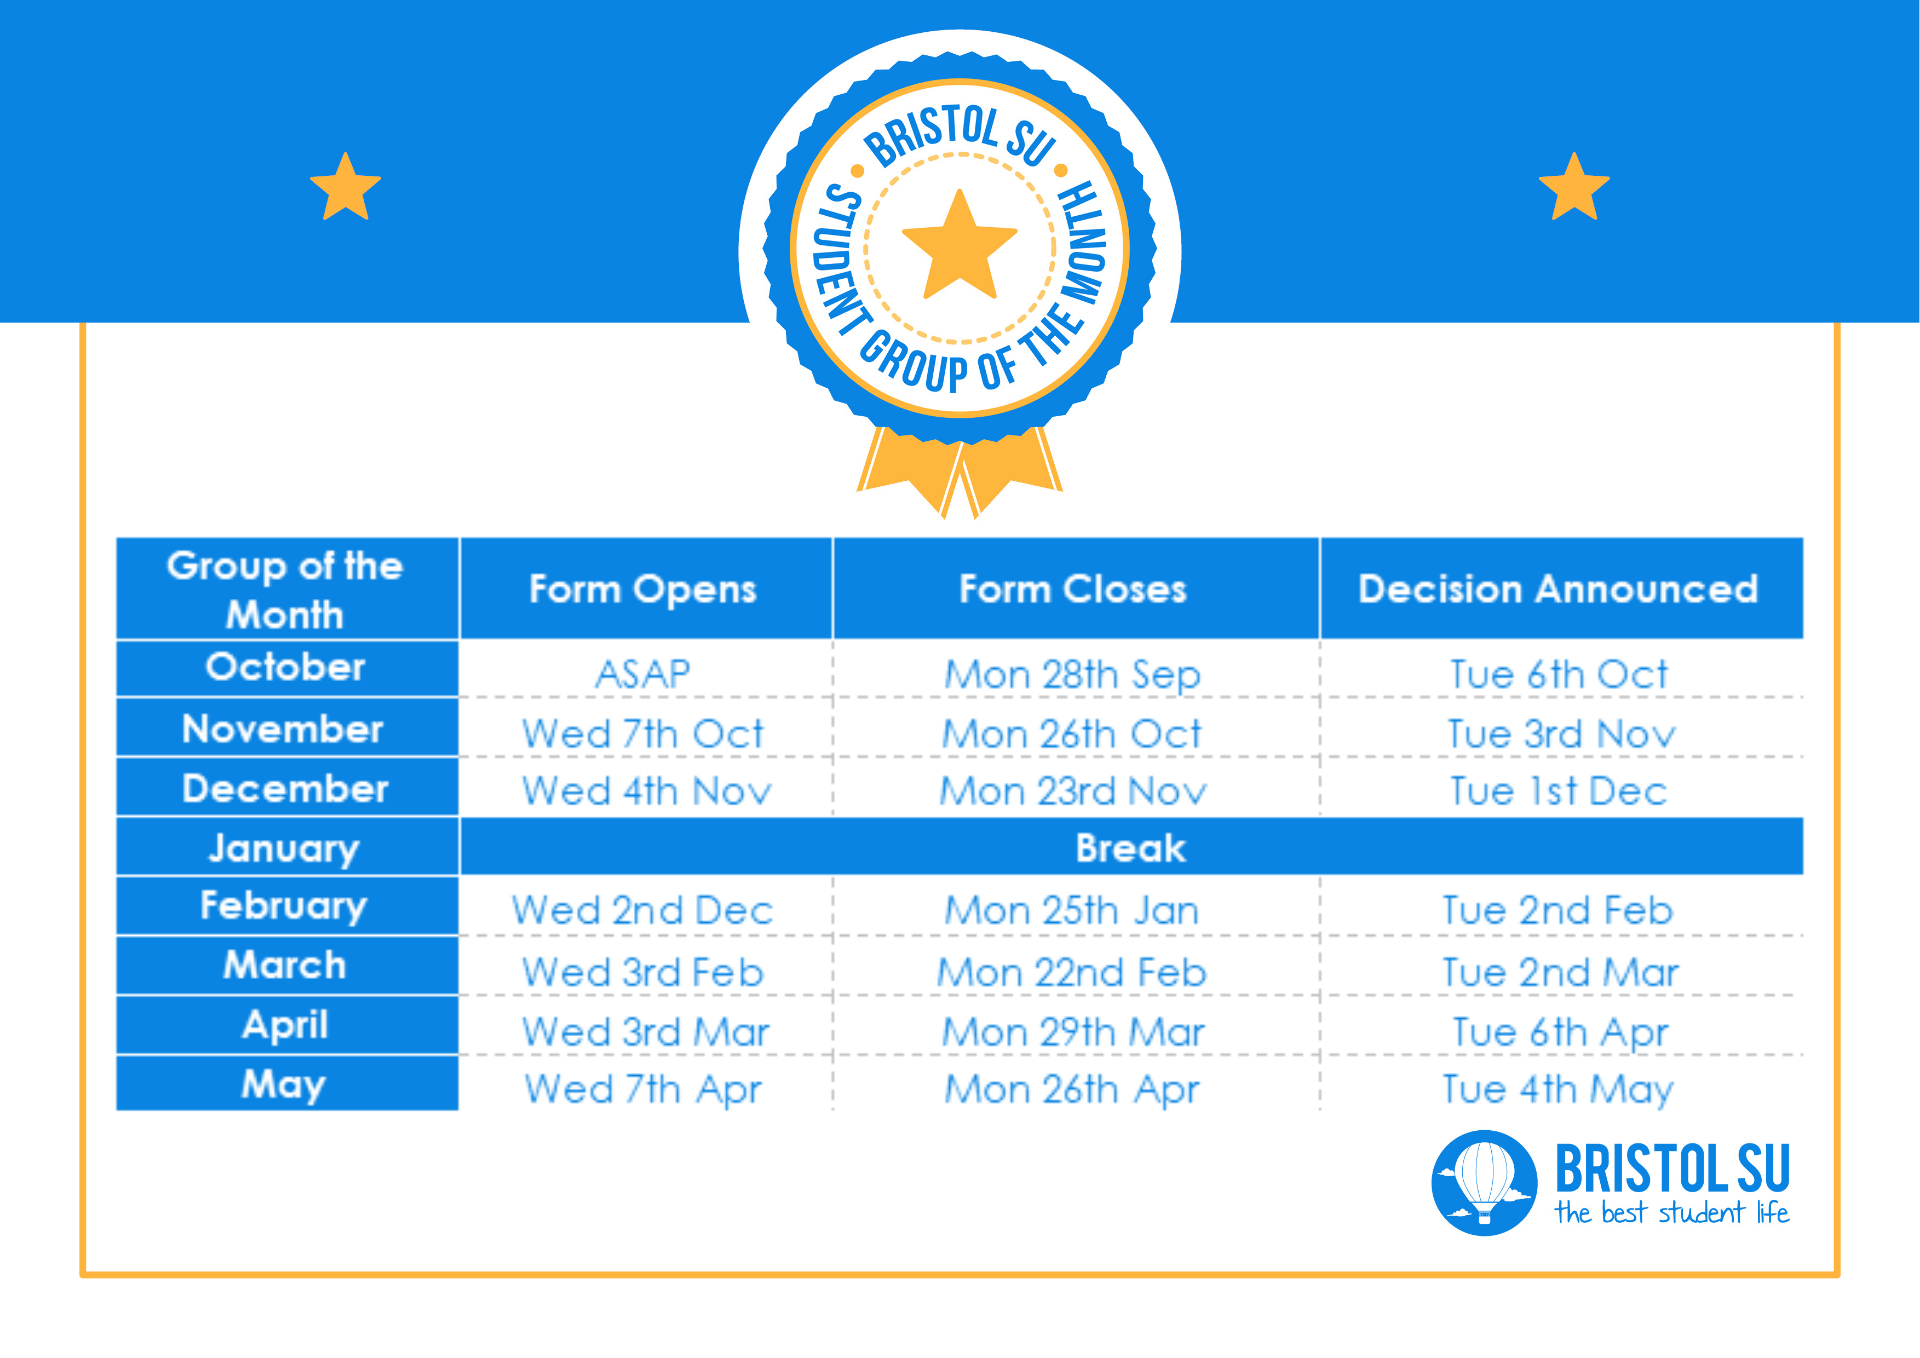 Group of the Month Deadlines